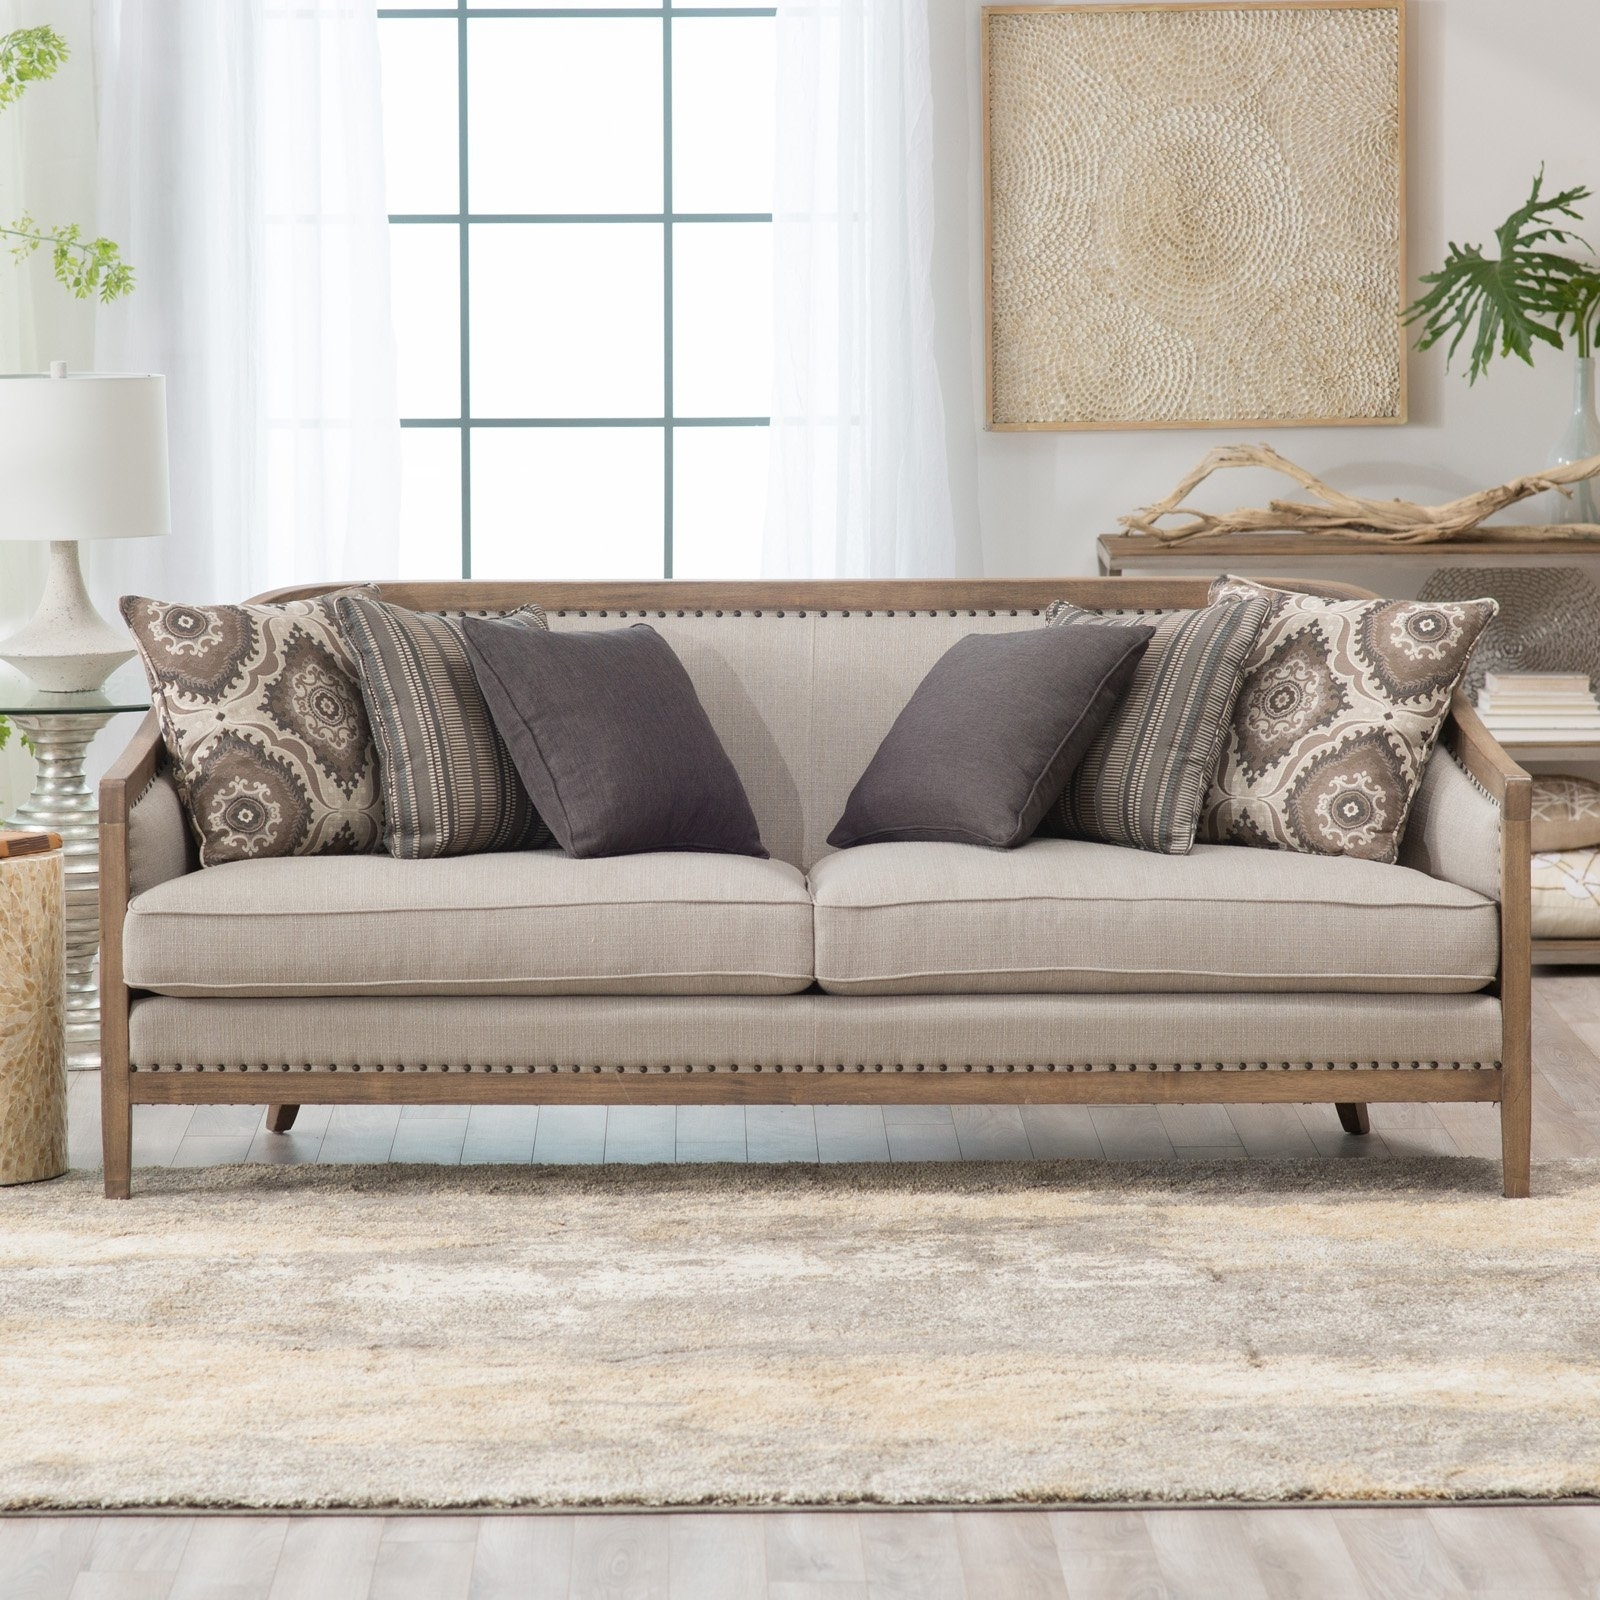 Belham Living Harper Sofa | Hayneedle In Harper Down 3 Piece Sectionals (Image 6 of 25)